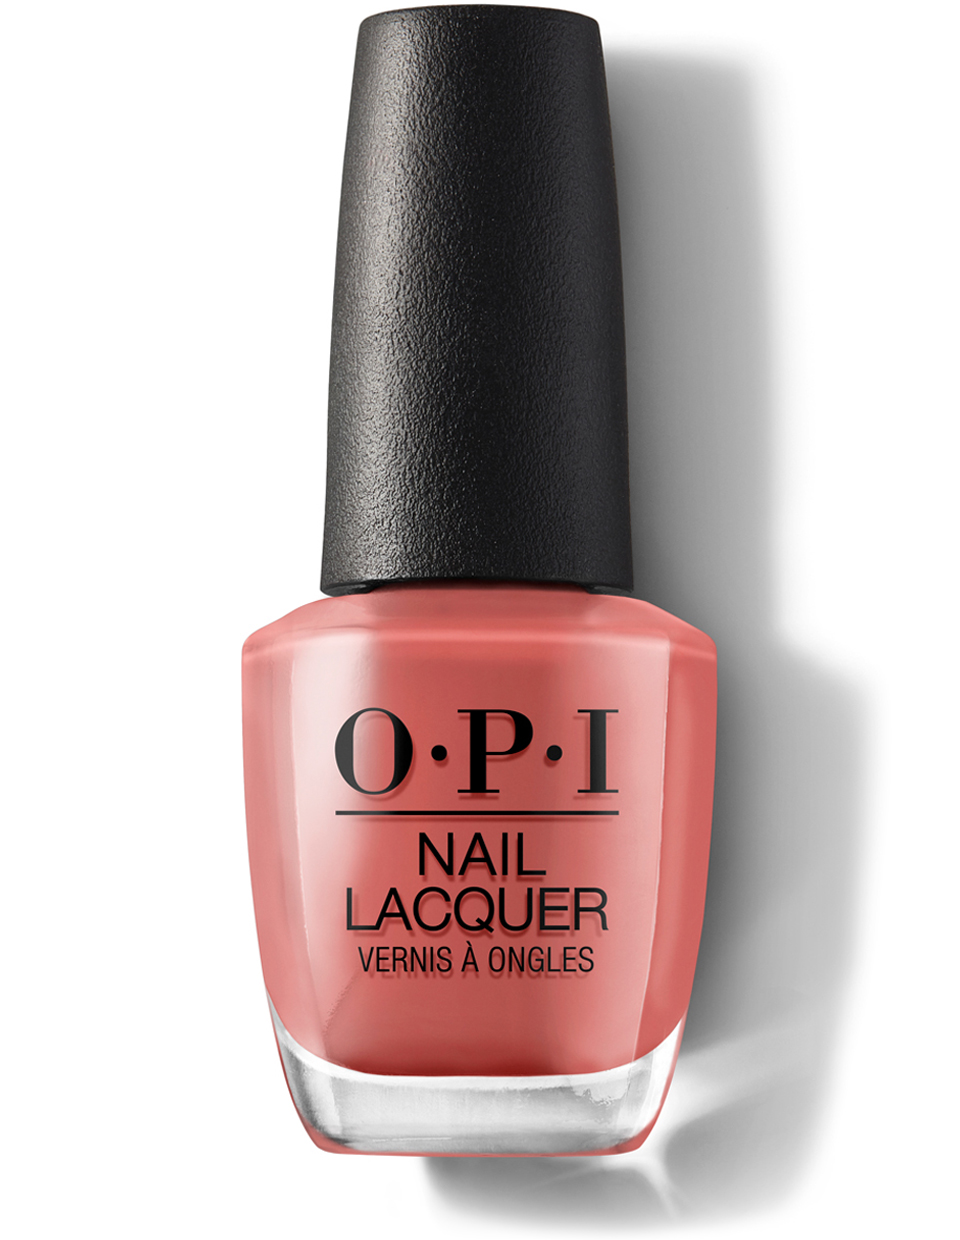 My Solar Clock is Ticking - Nail Lacquer | OPI